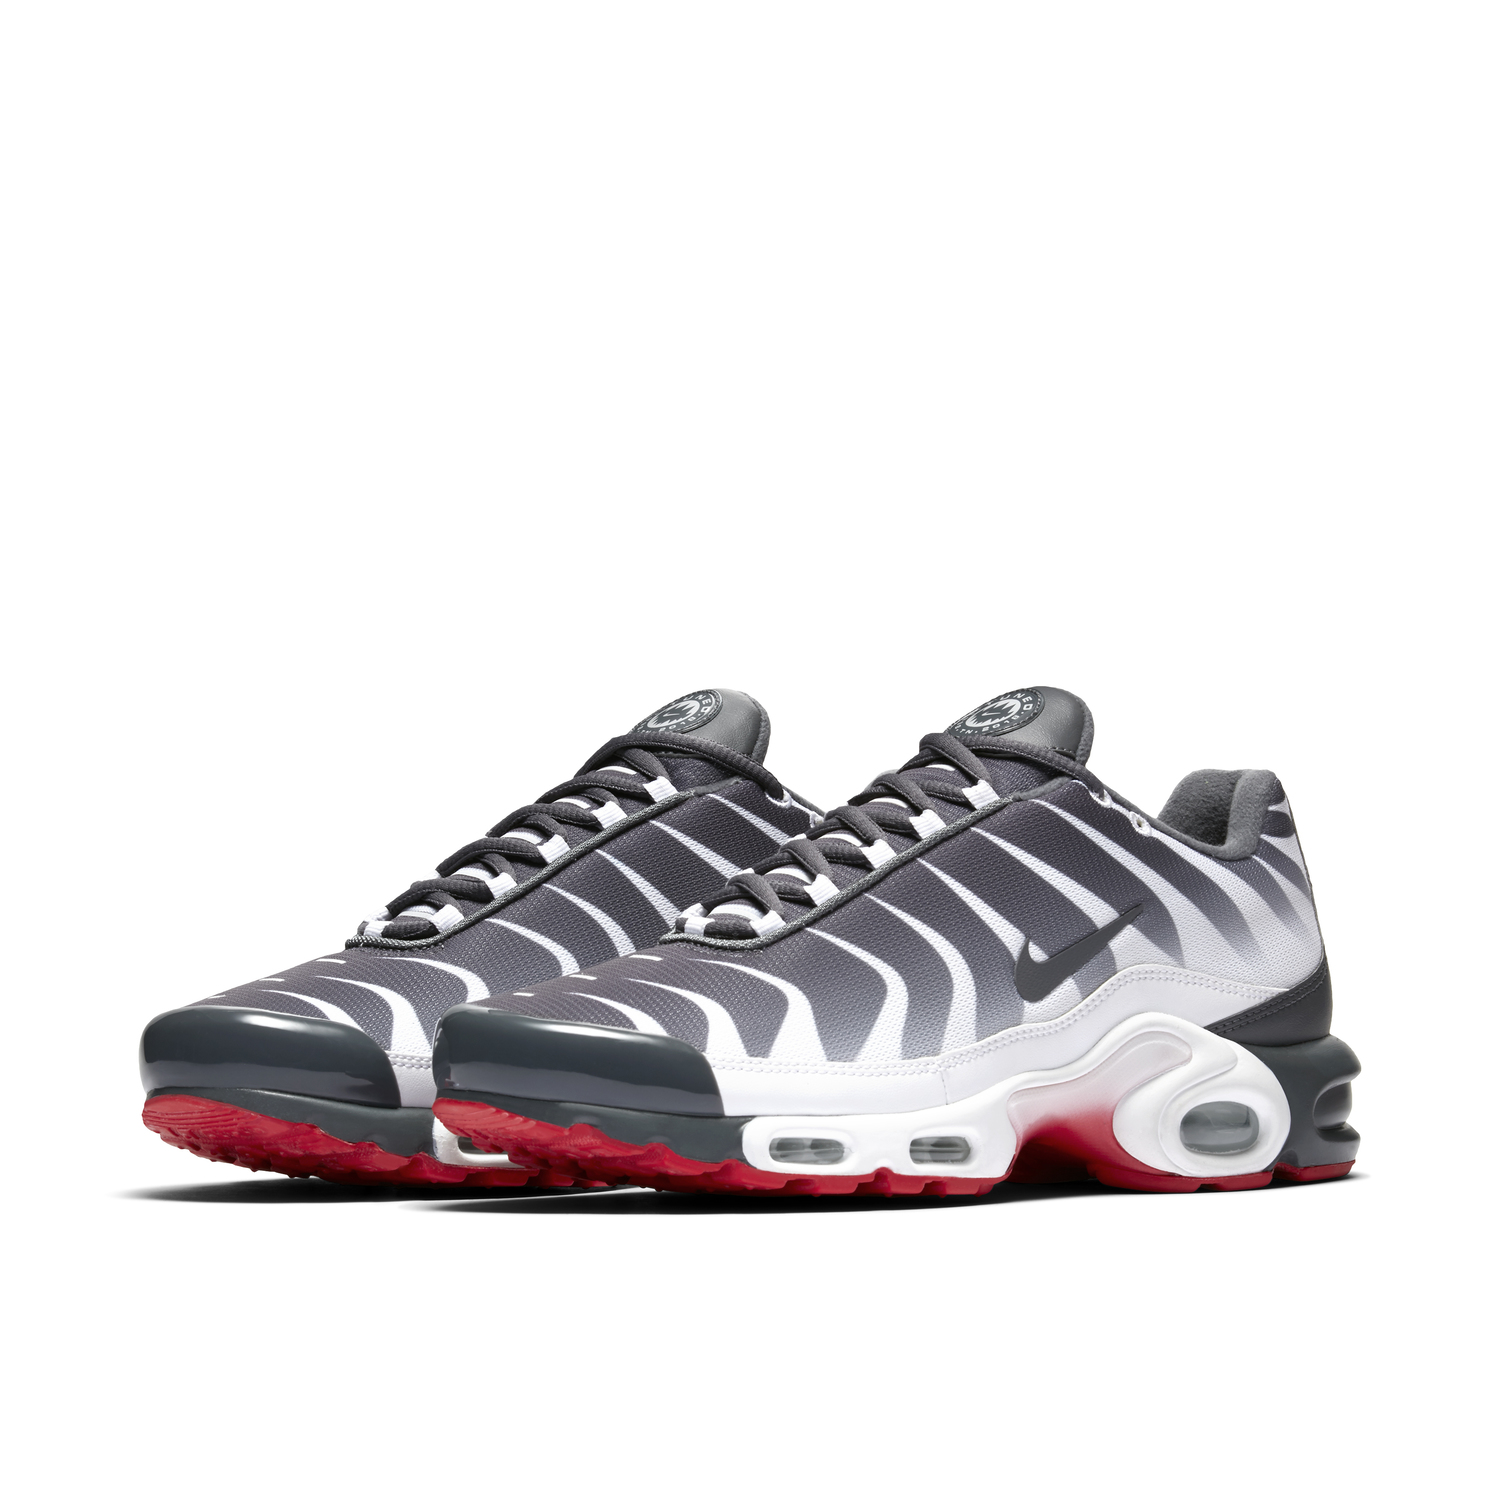 best service de850 cc160 New Colorways of the Nike Tuned Air Unveiled for Air Max Day ...